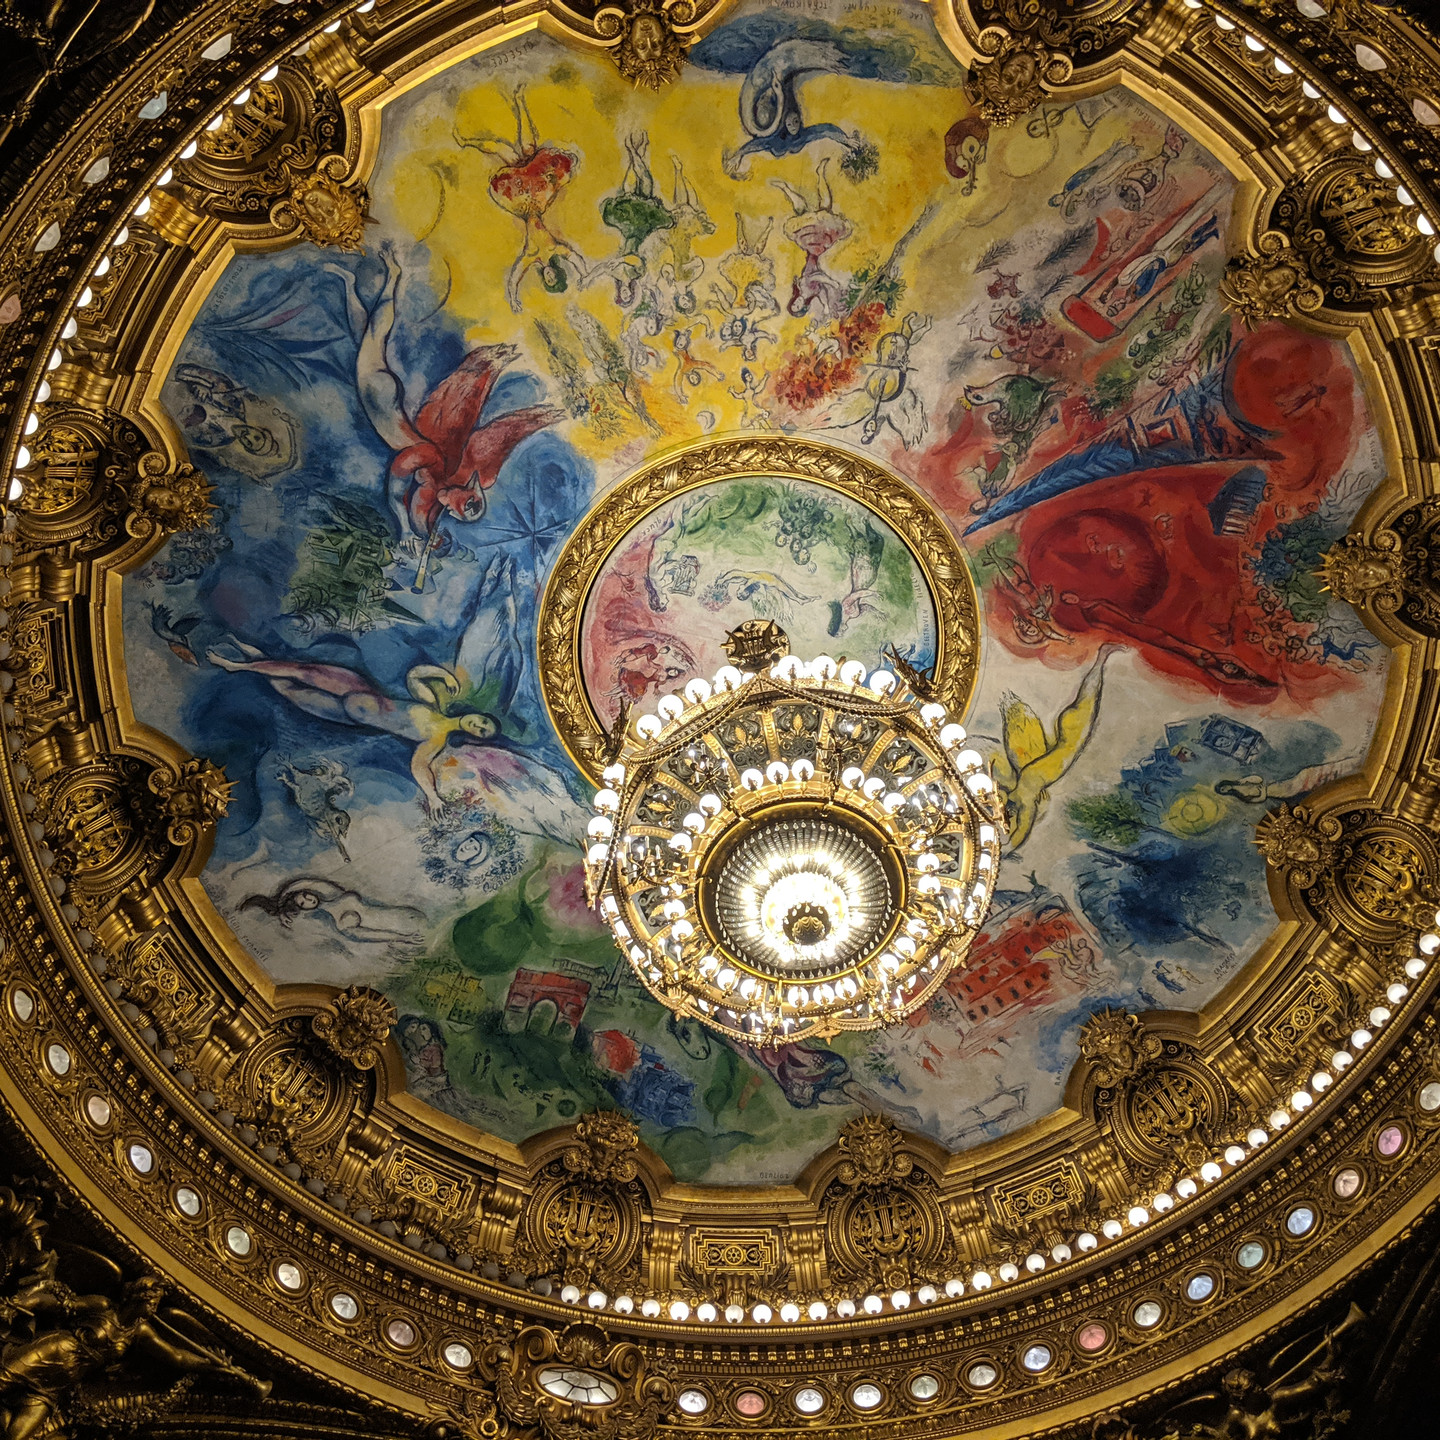 Modern Ceiling Art and Chandelier in the Auditorium at the Palais Garnier Paris Opera House